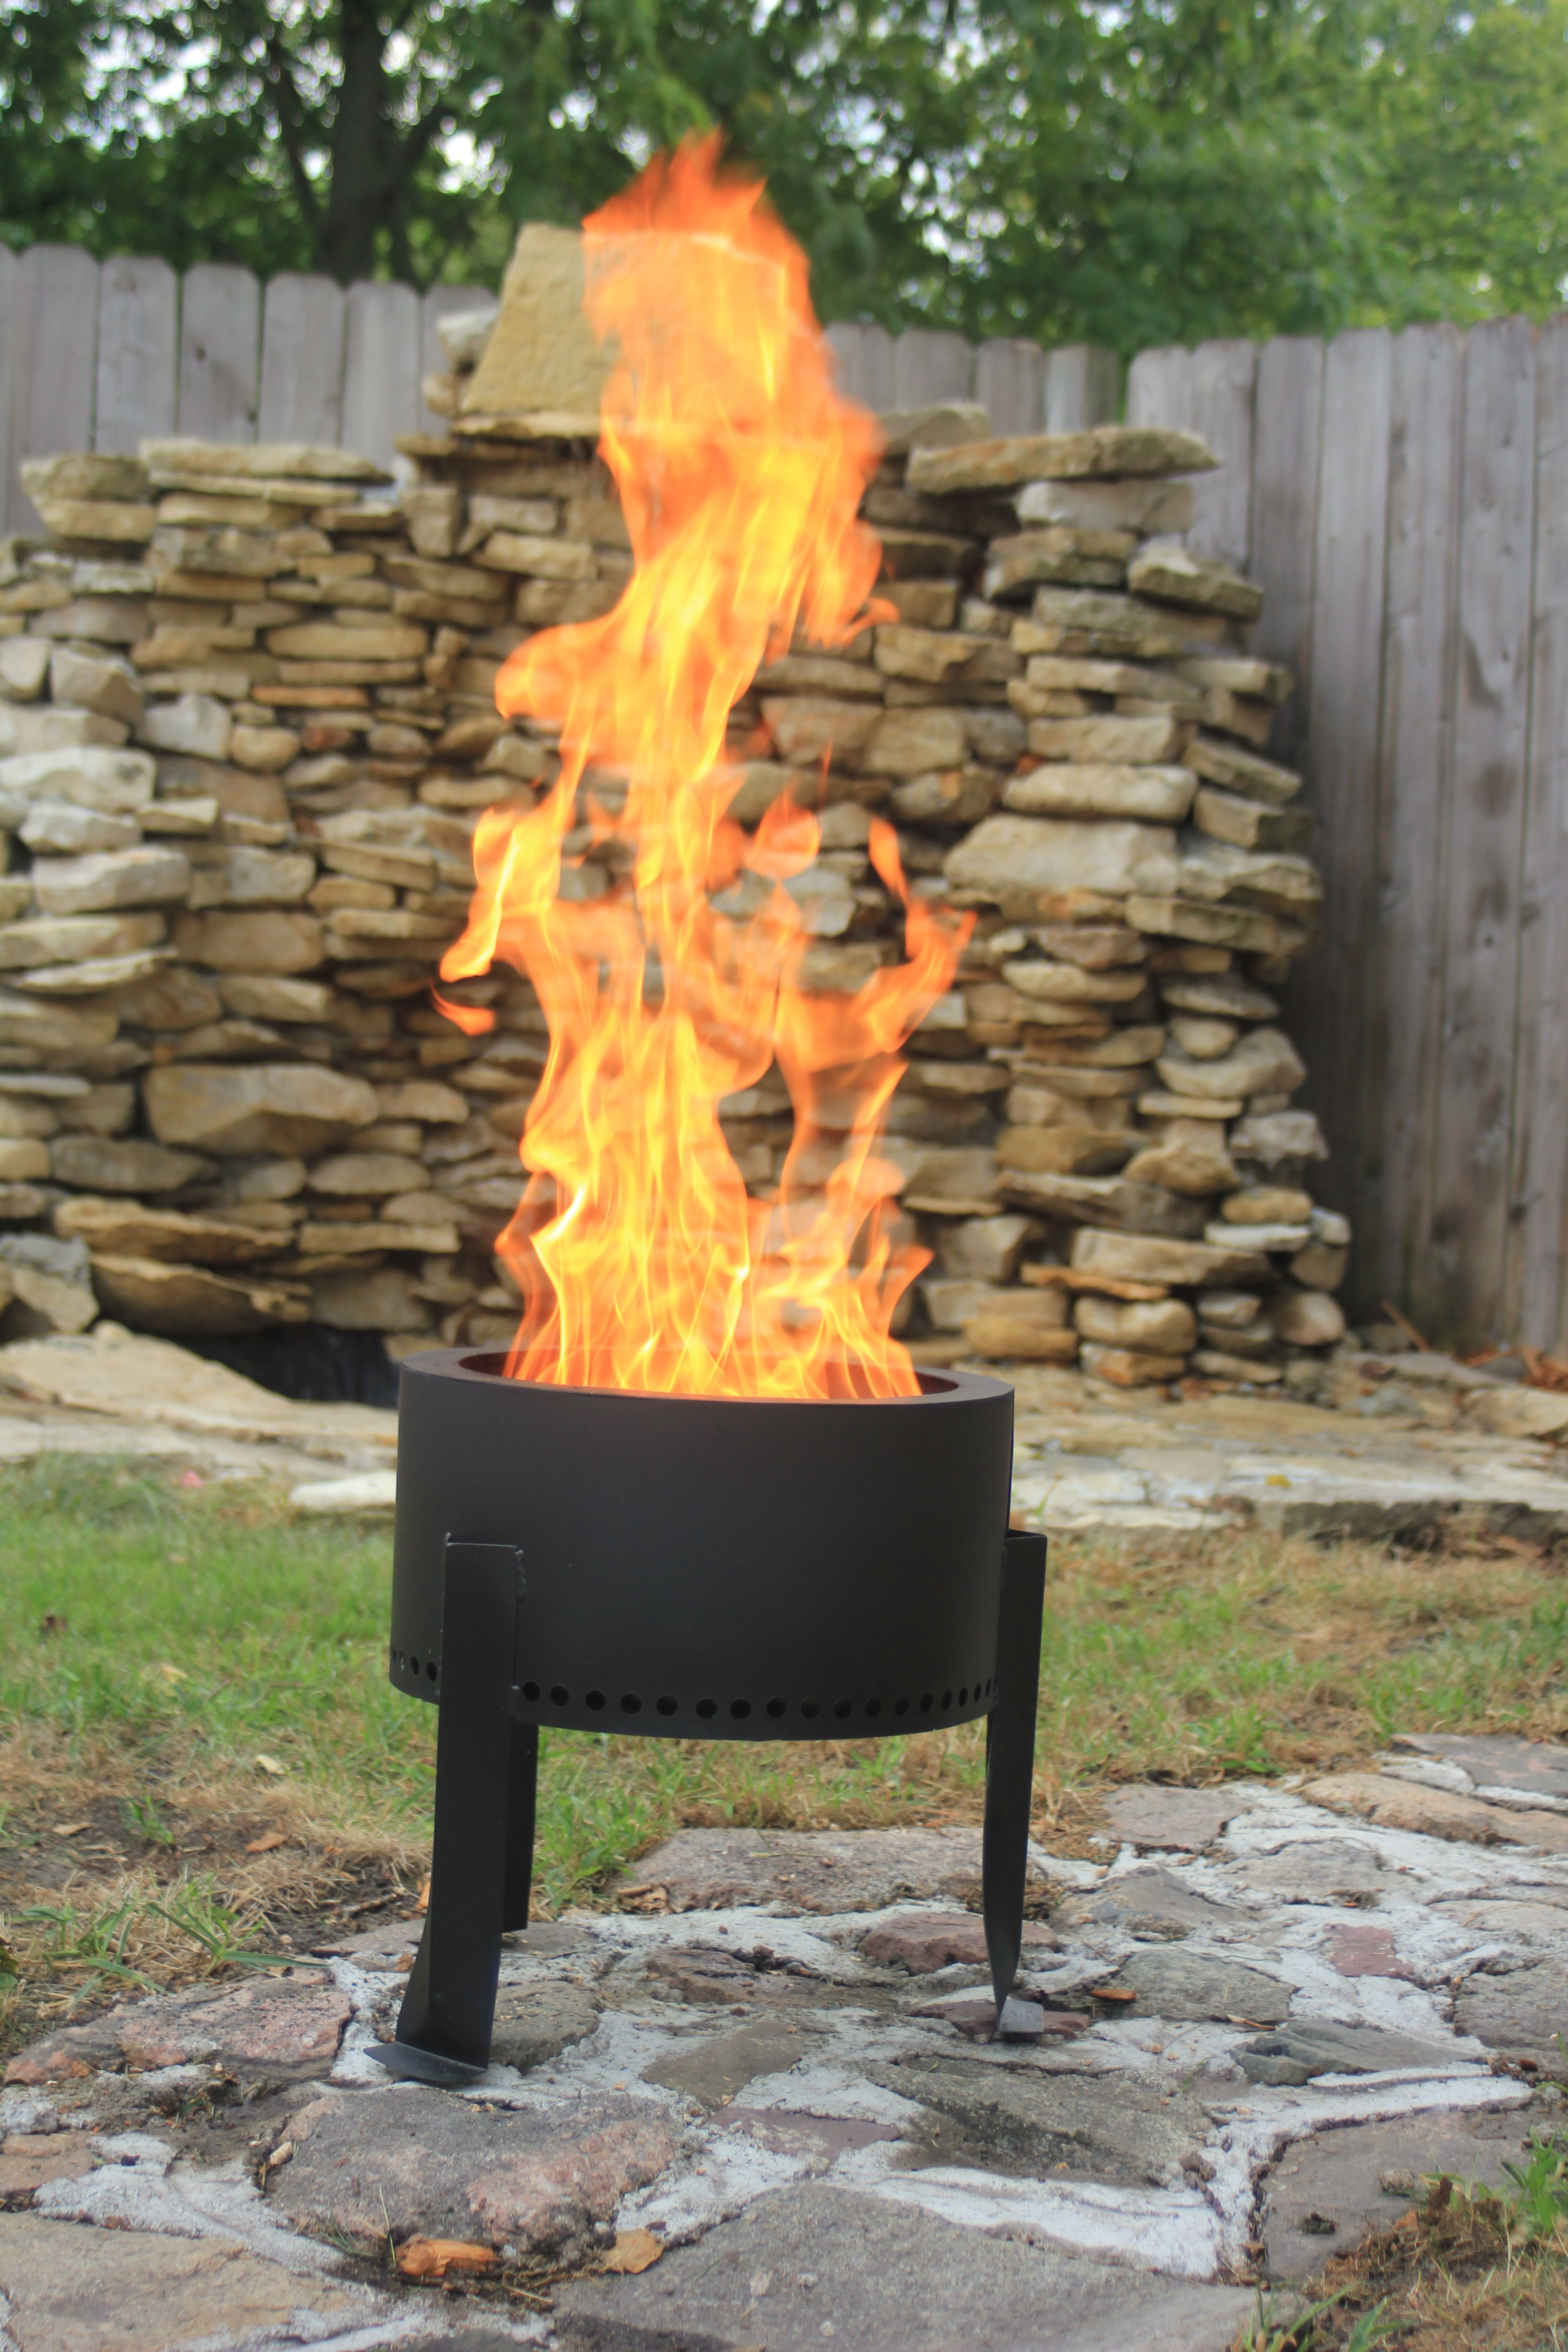 This Is A Pellet Fire Pit They Burn More Cleanly And Hotter Than Wood Fires By Using Wood Pellets Pellets Are Cheape Fire Pit Outdoor Fire Backyard